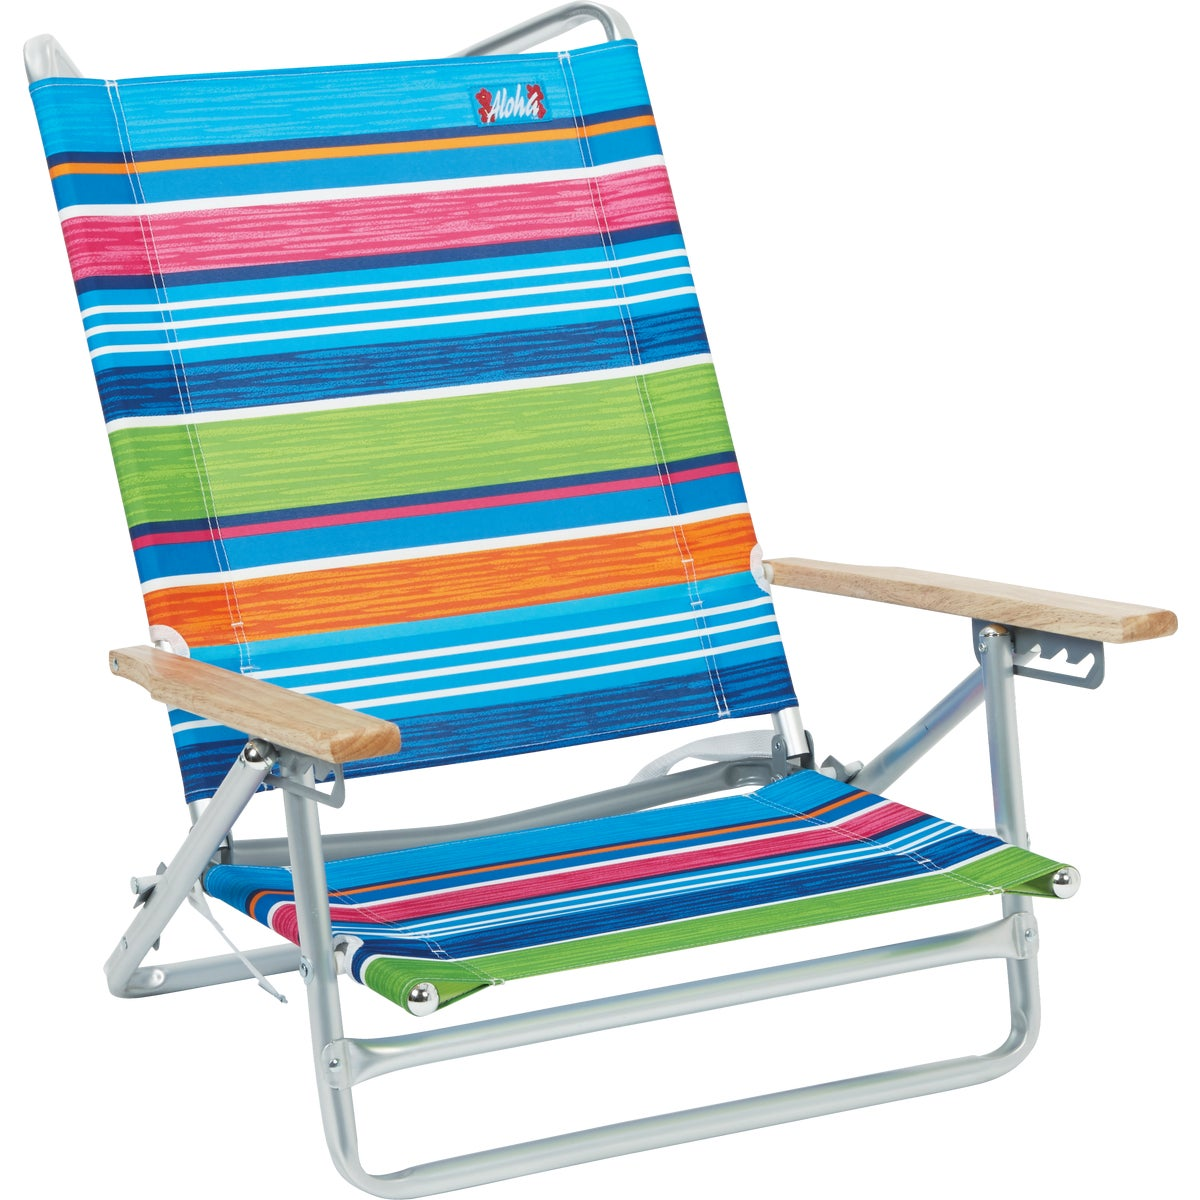 DELUXE BEACH CHAIR - SC590C-1305 by Rio Brands  Ningbo1